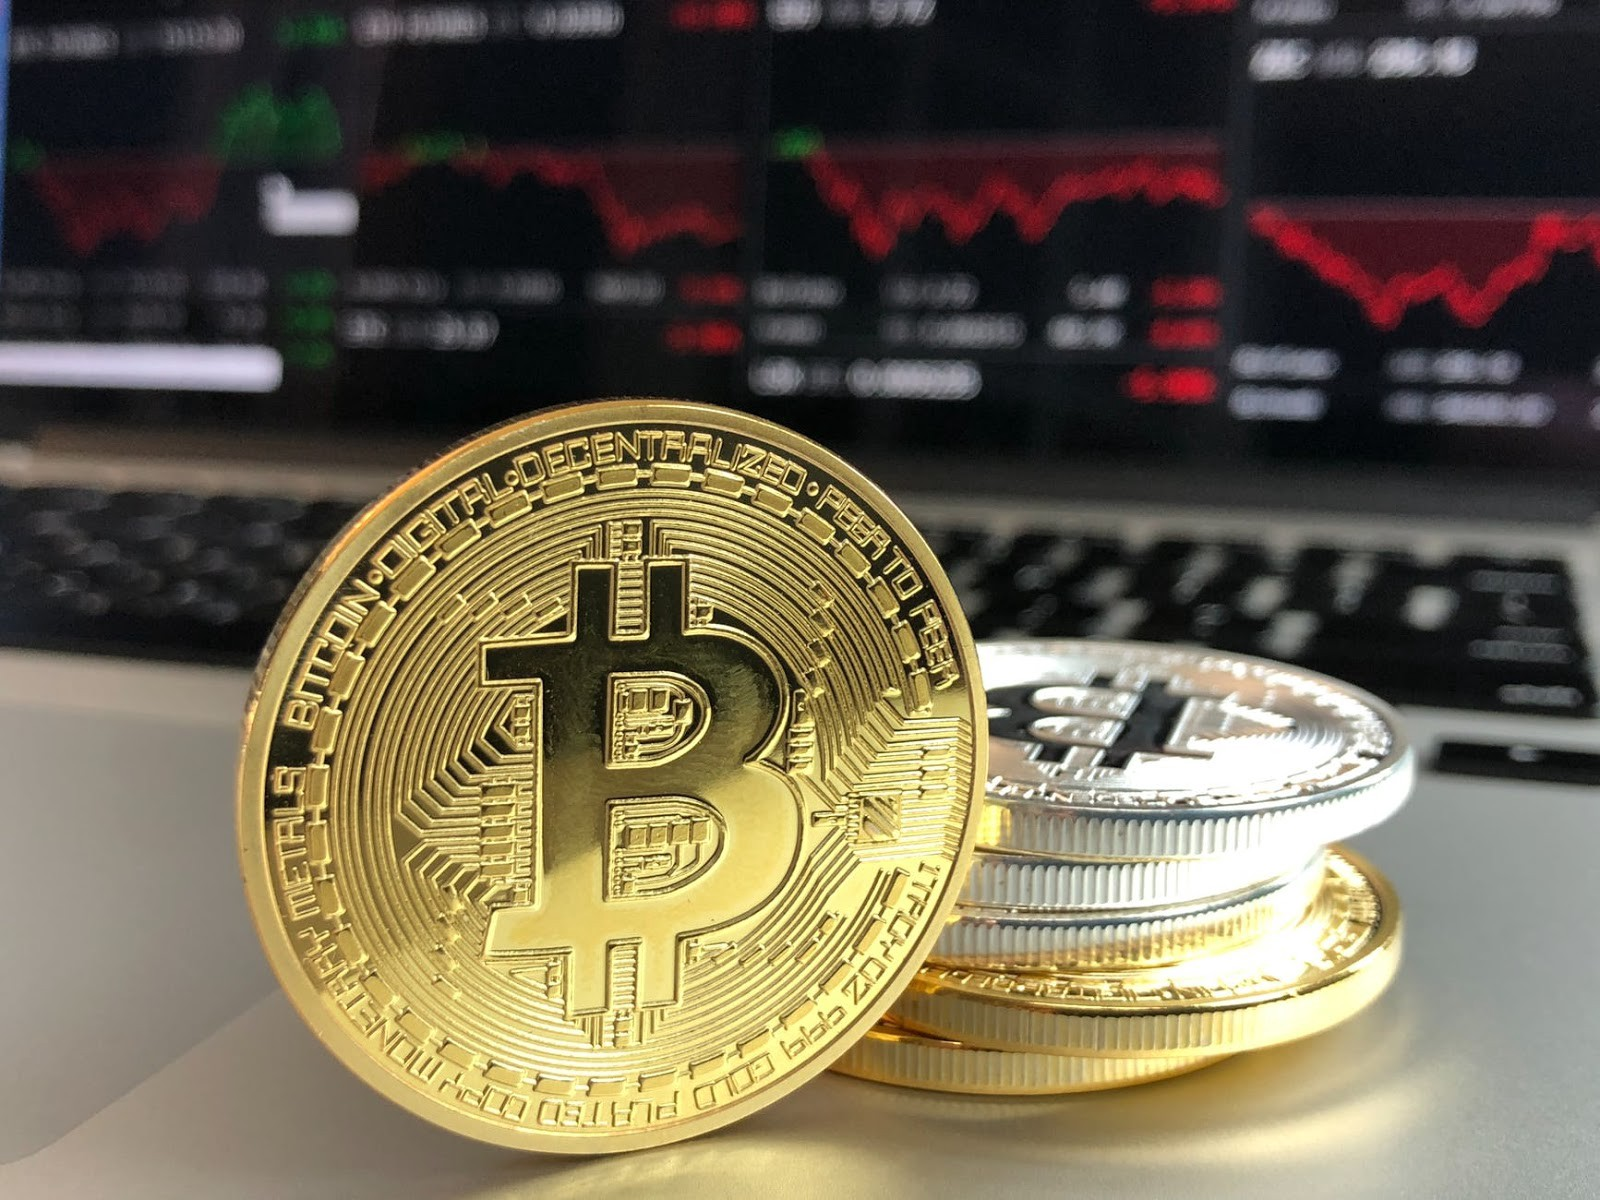 /how-social-media-helped-cryptocurrencies-rise-in-popularity-cf6ef2ef685a feature image